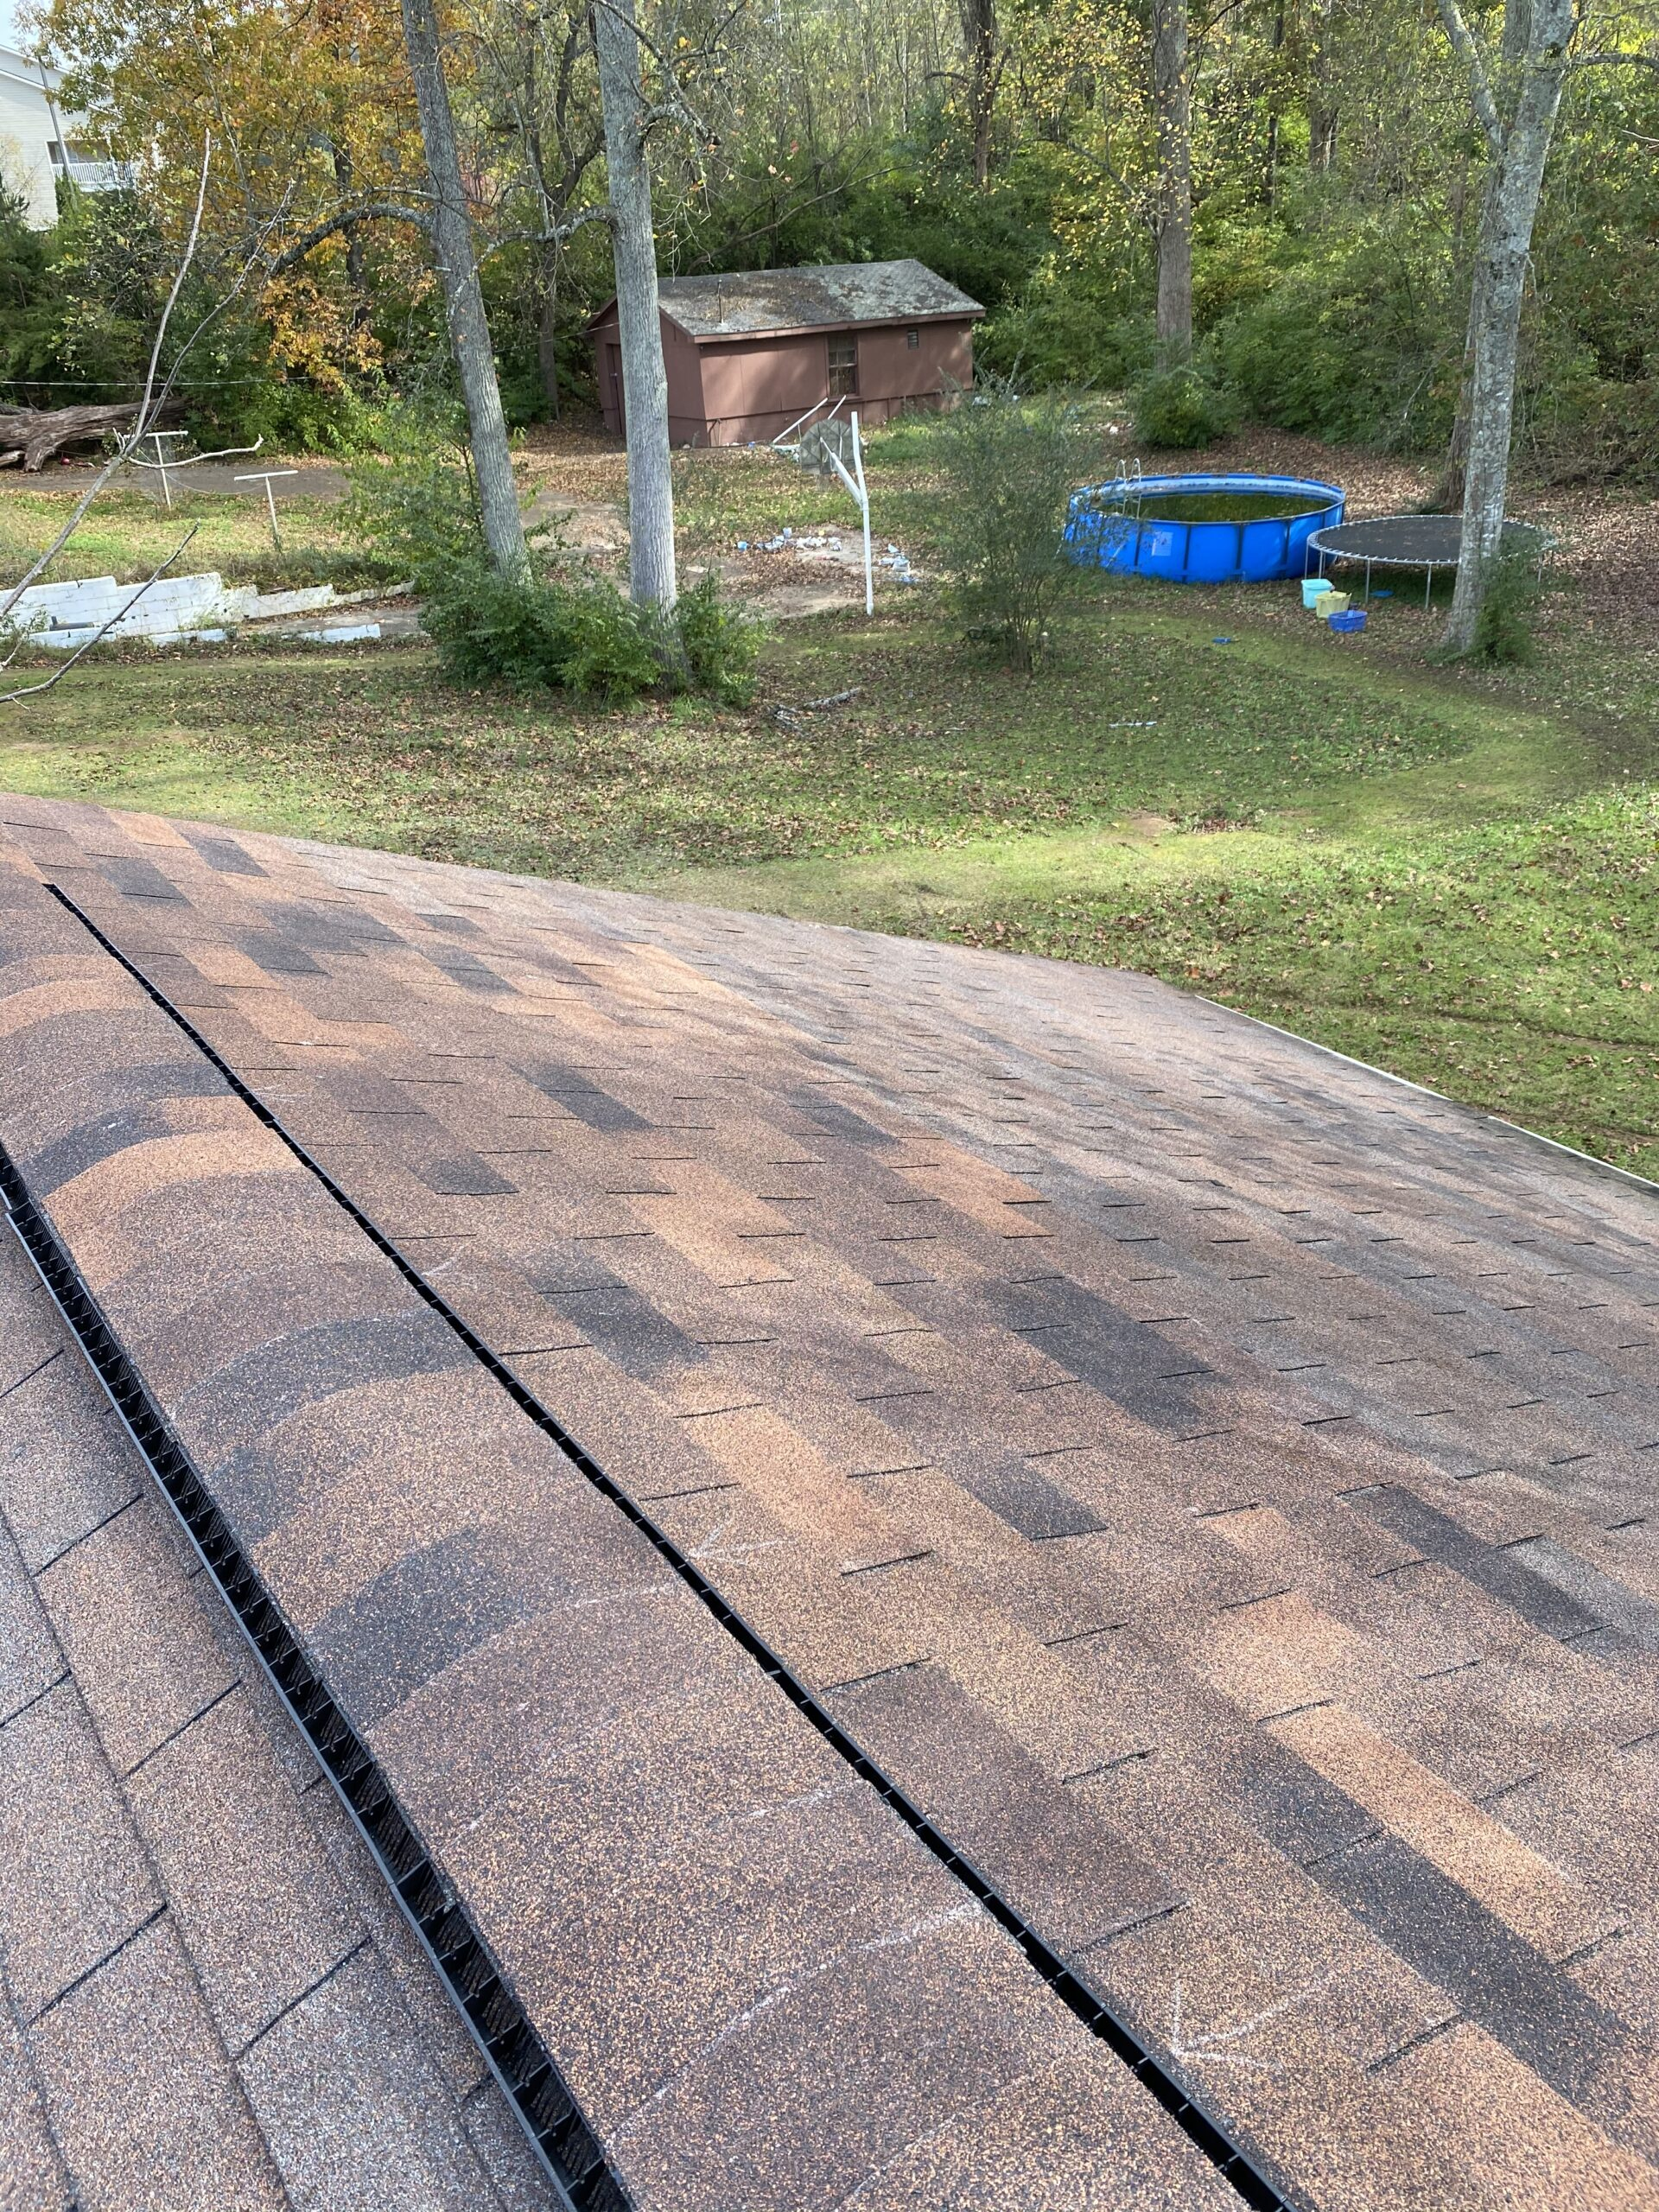 Replaced missing shingles